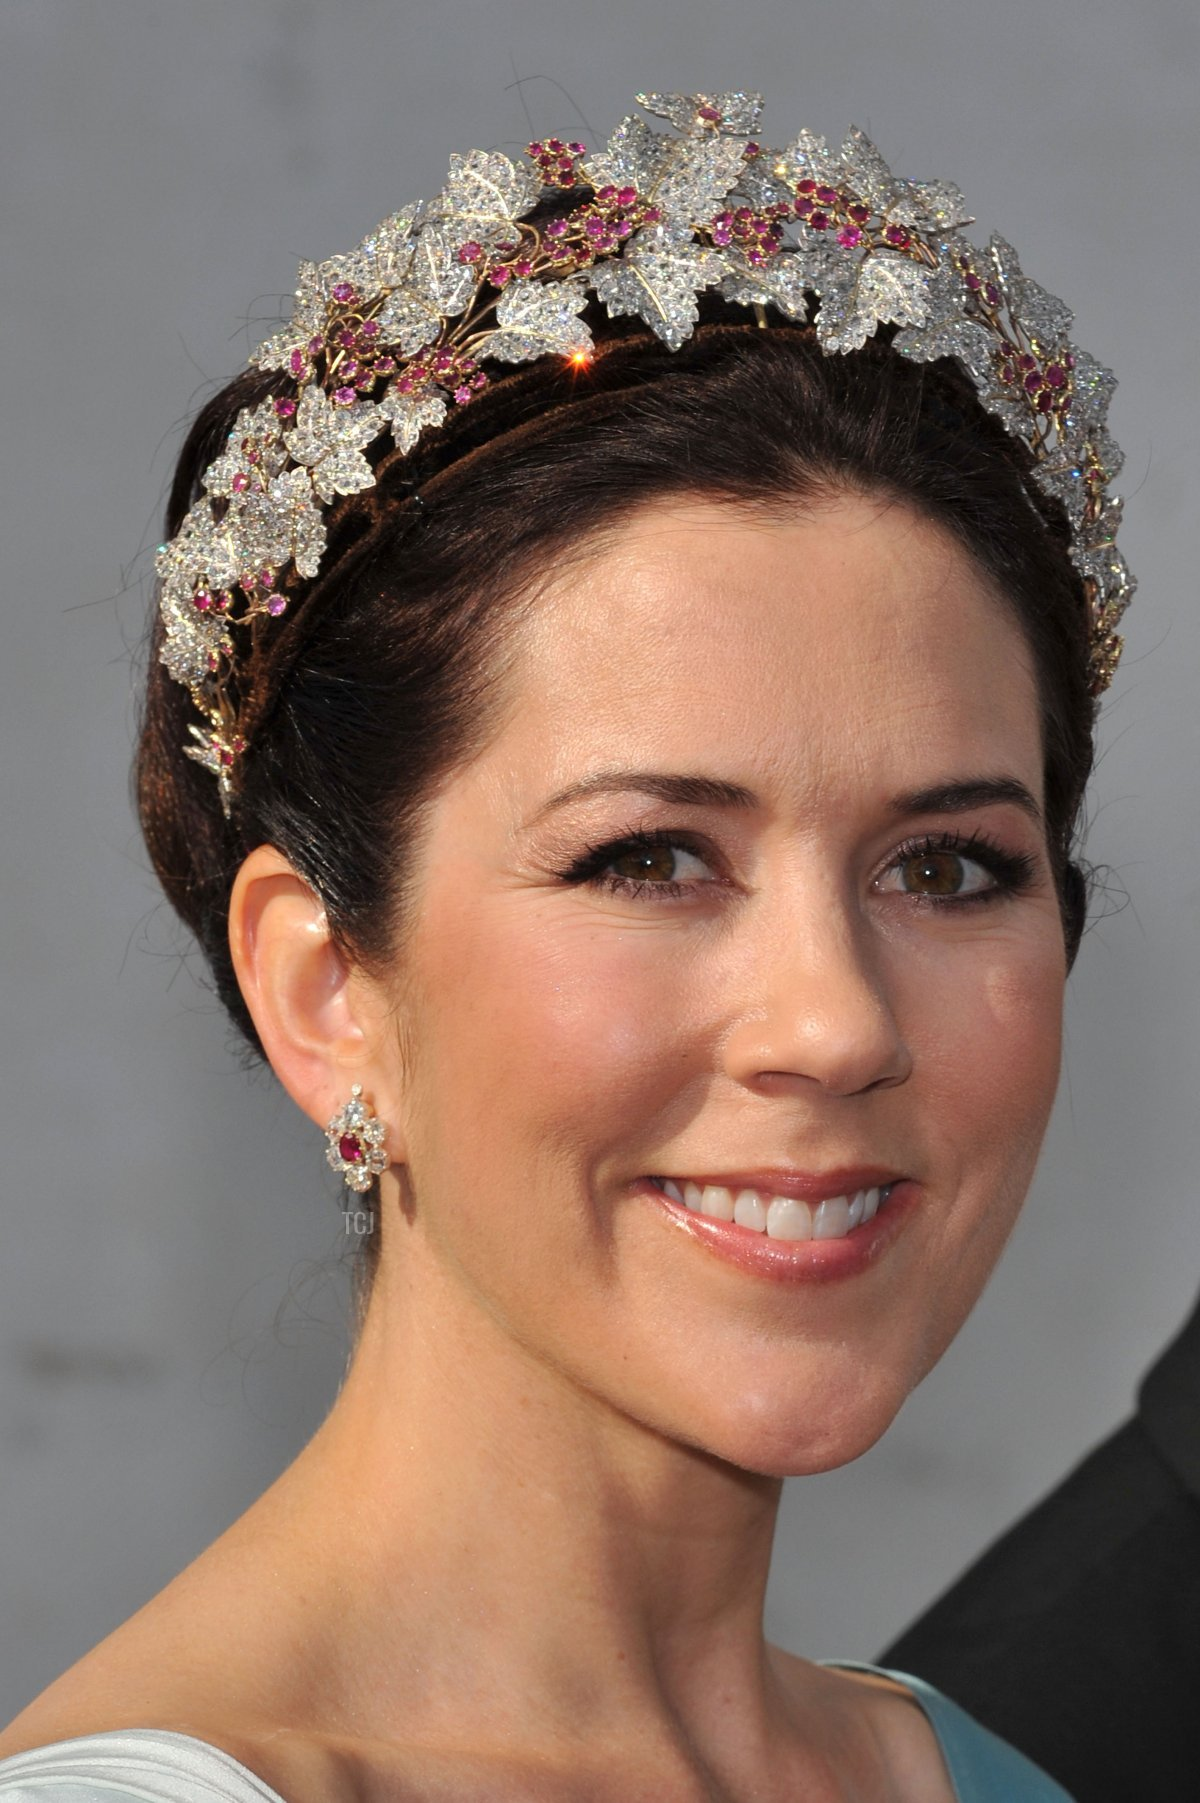 Crown Princess Mary of Denmark attends the wedding of Prince Joachim and Princess Marie of Denmark, May 2008